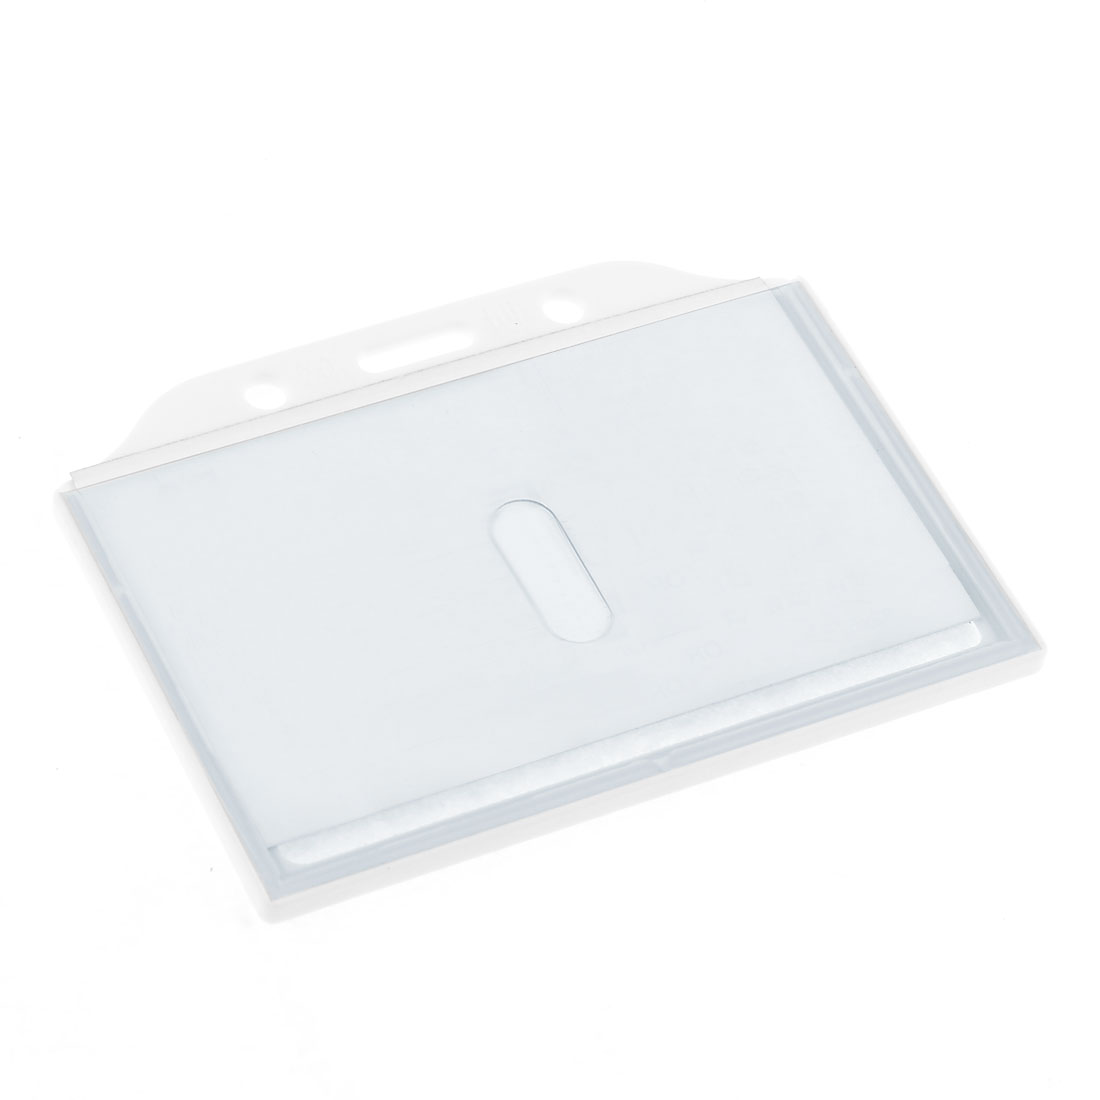 White Clear Hard Plastic Office Horizontal Work Card Holder